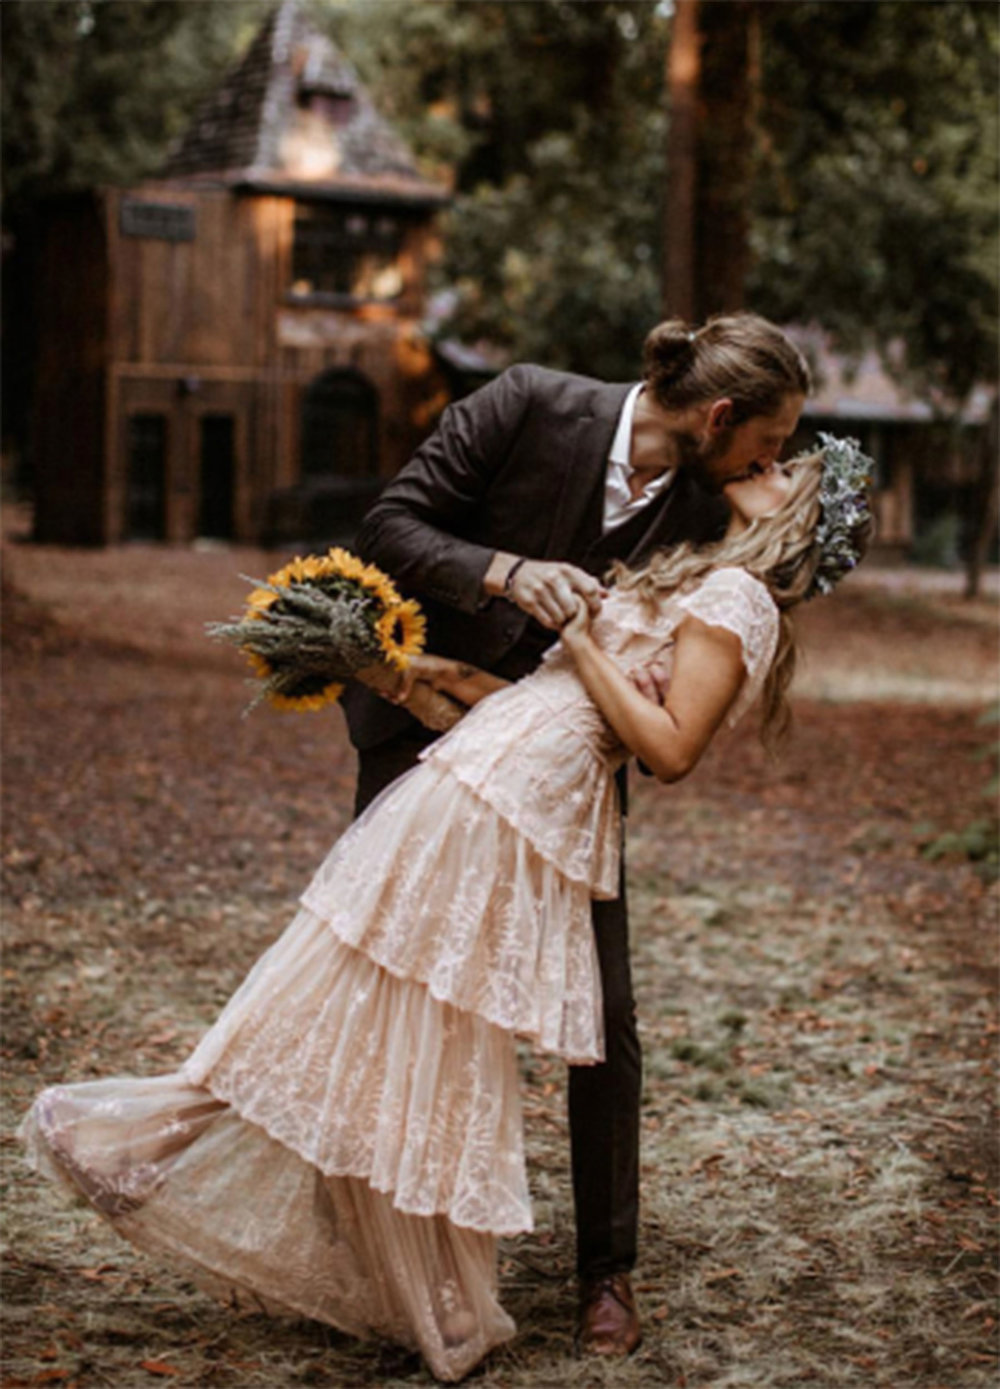 A bride and groom kiss in front of the main accommodations in the Burly Grove at The Brambles outside of Philo, California in Anderson Valley